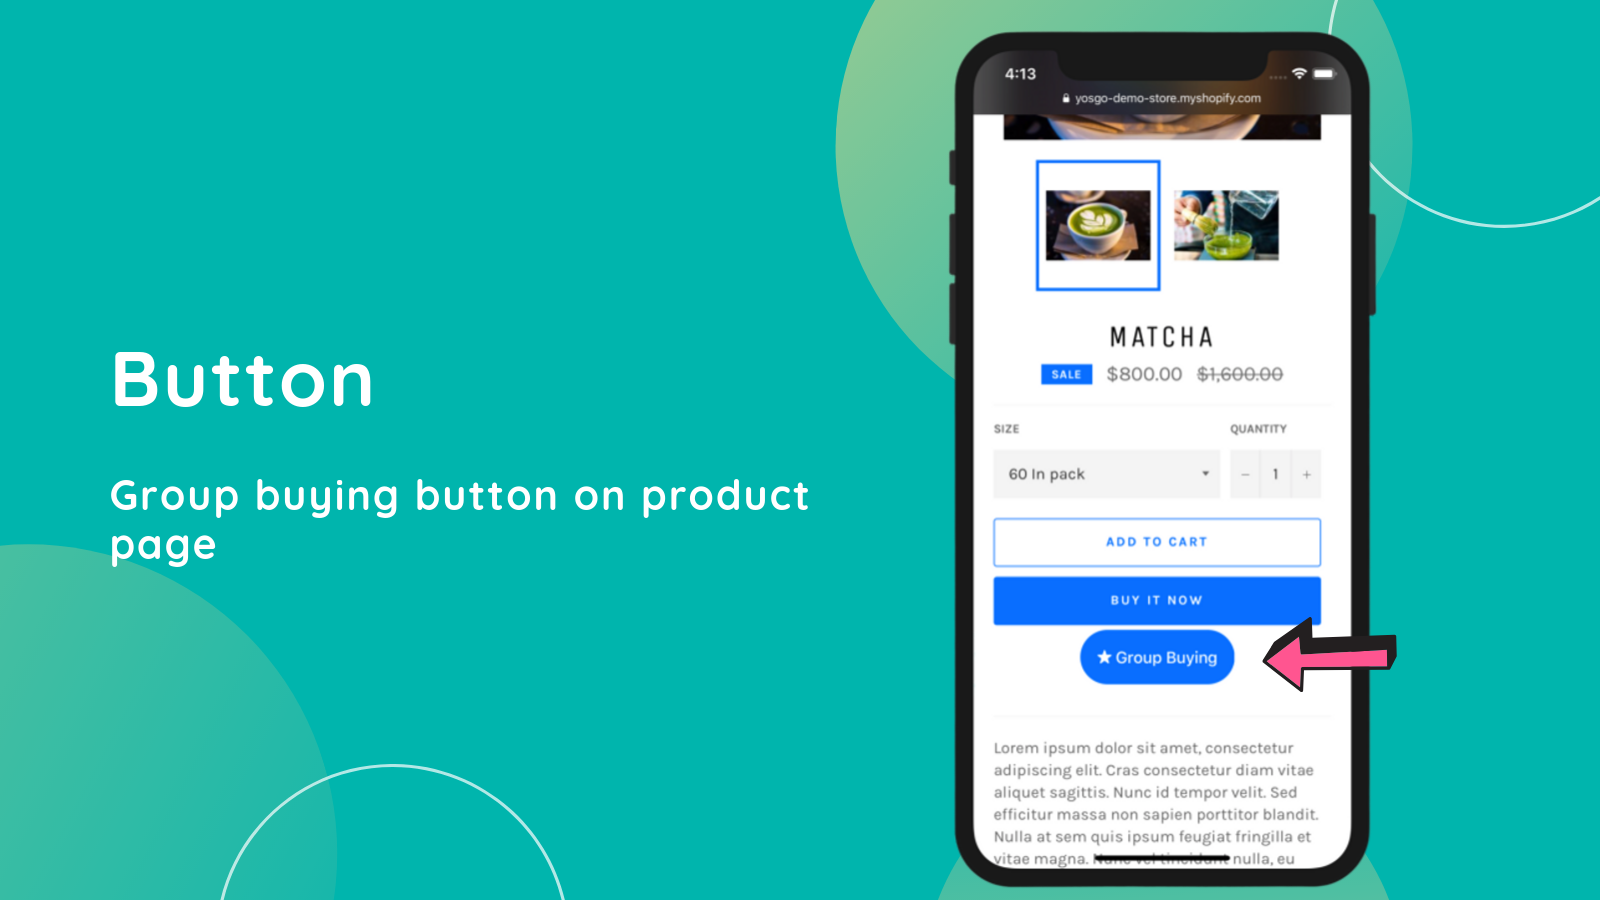 Group buying button on product page